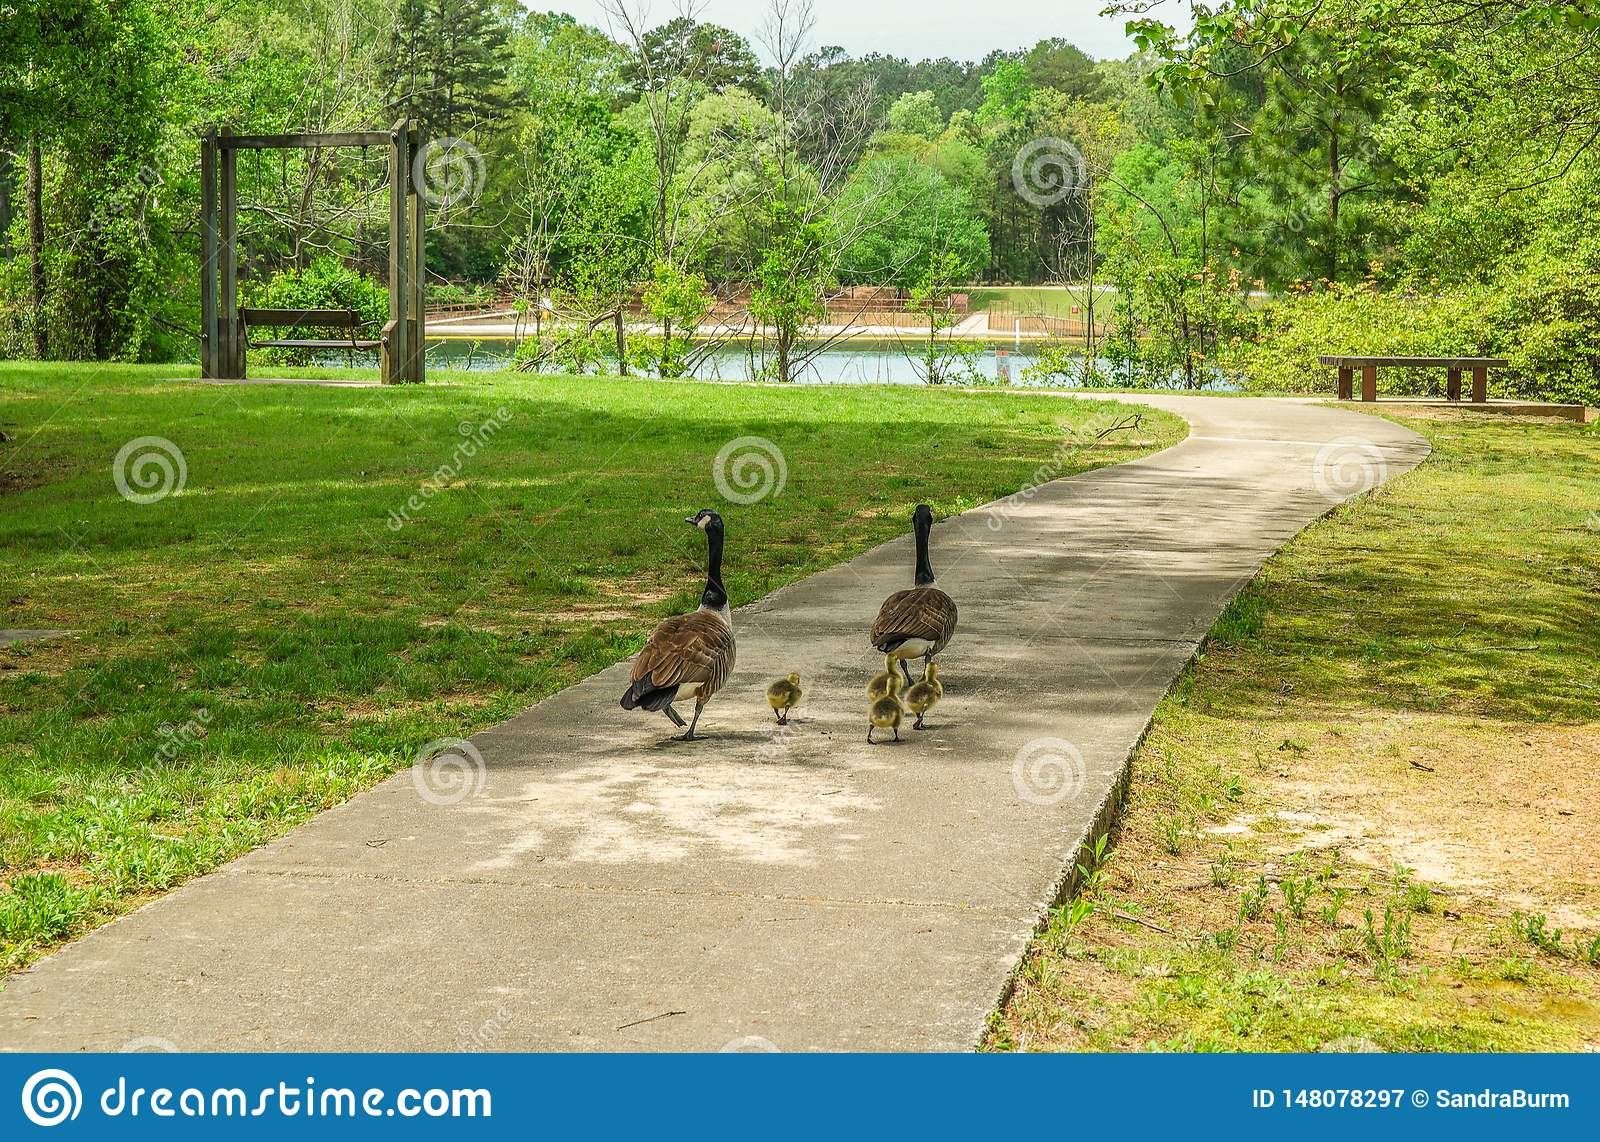 Geese walking in the park